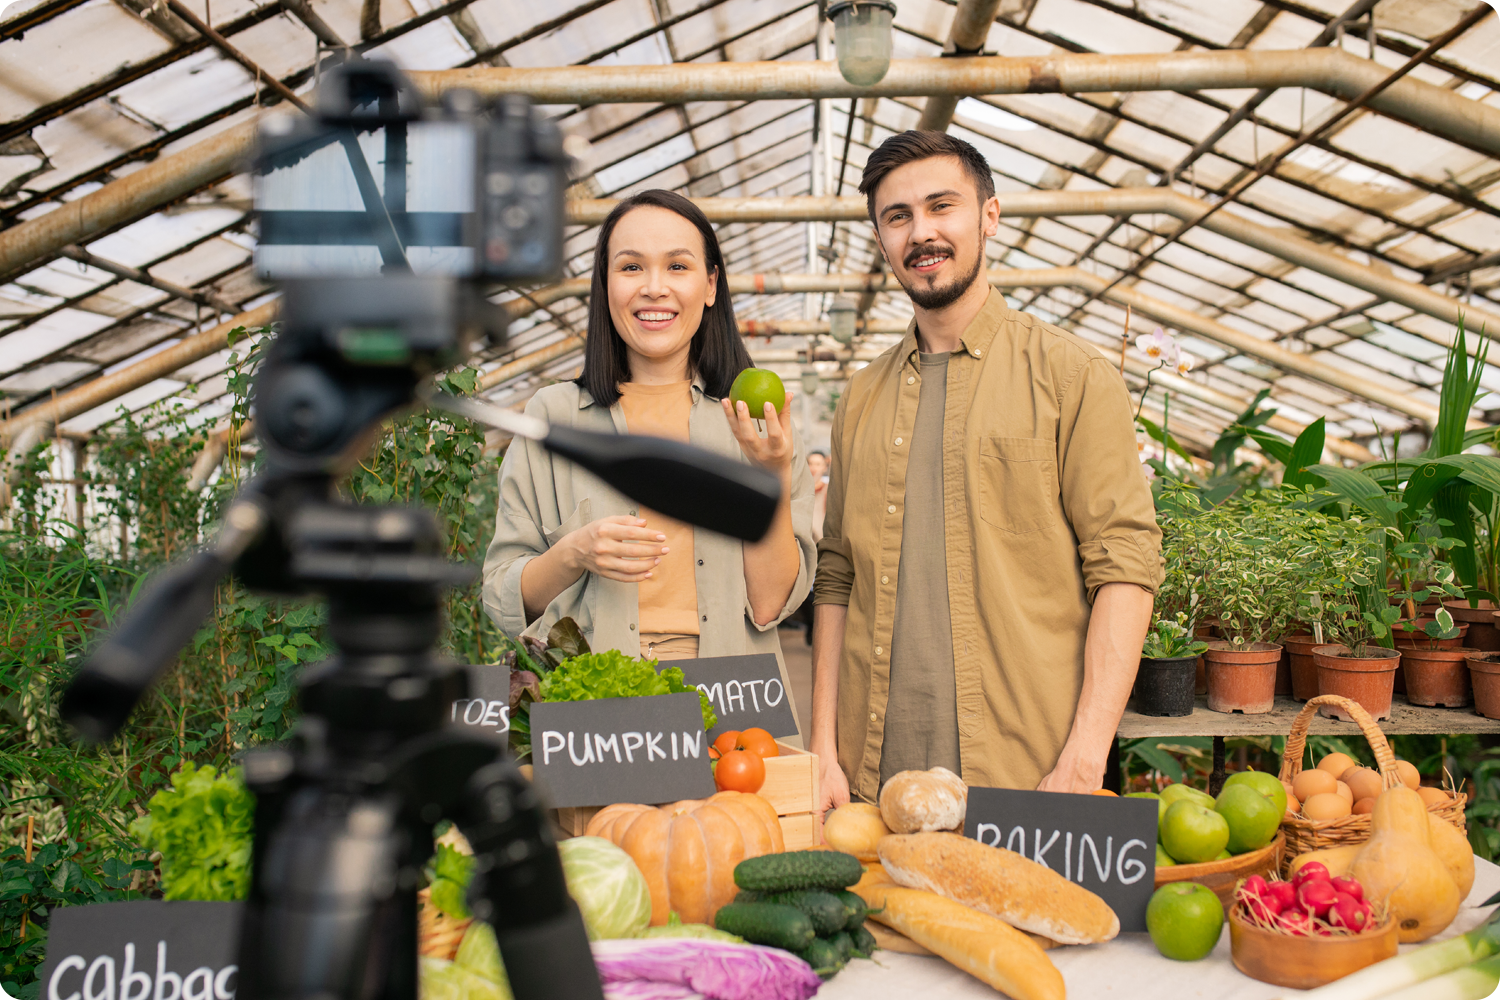 Man and woman being filmed displaying produce